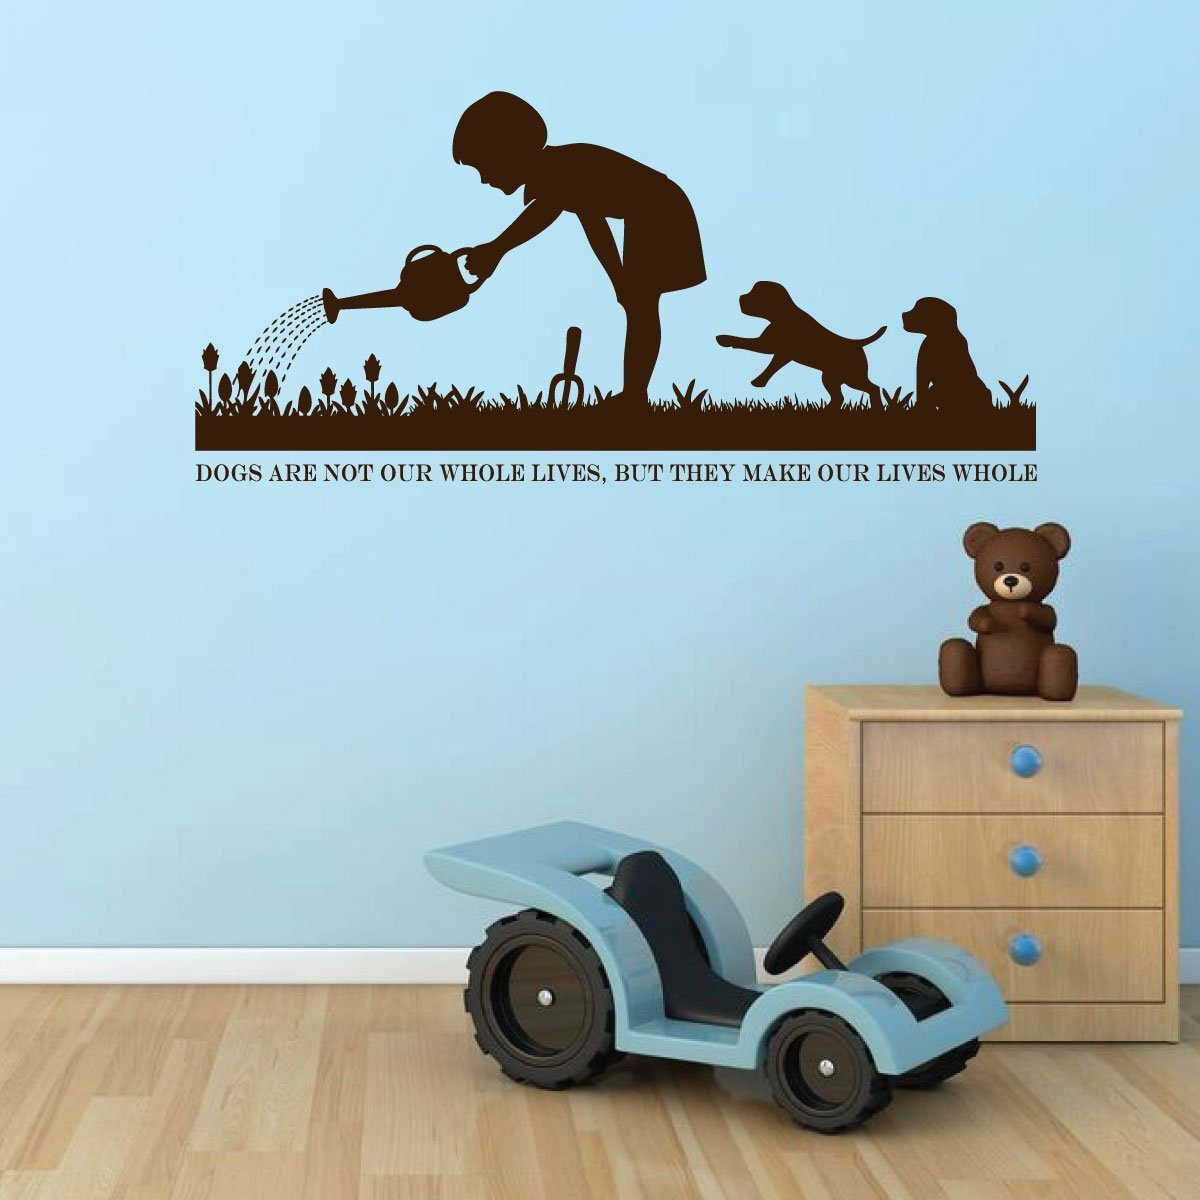 Dog Wall Decals   Dog Lover Gifts   Dog Decor   Vinyl Wall Decor